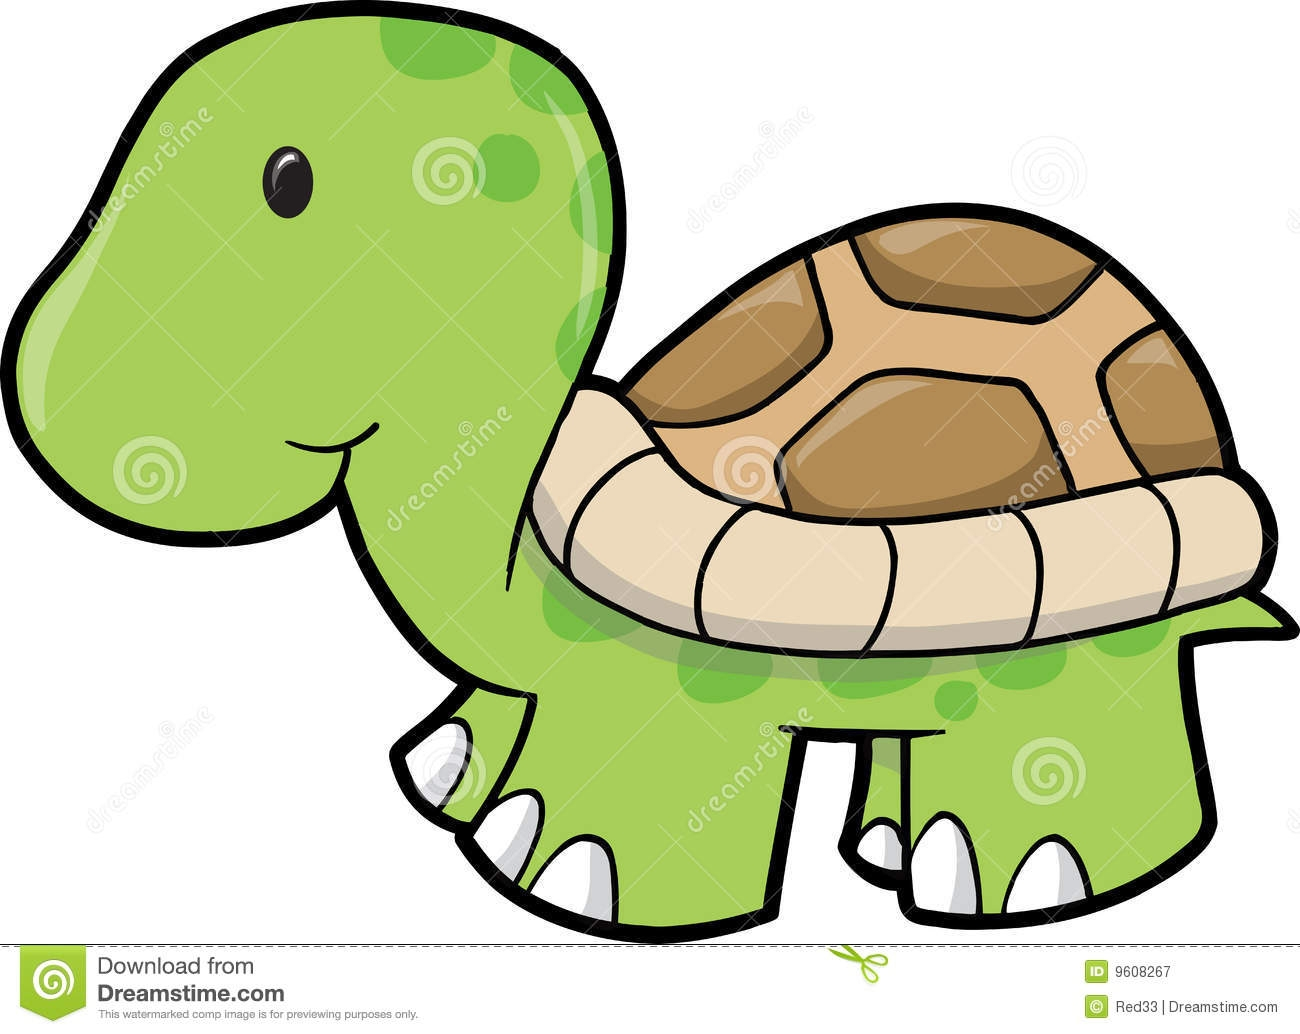 27 Turtle Coloring Pages Selection | FREE COLORING PAGES - Part 3